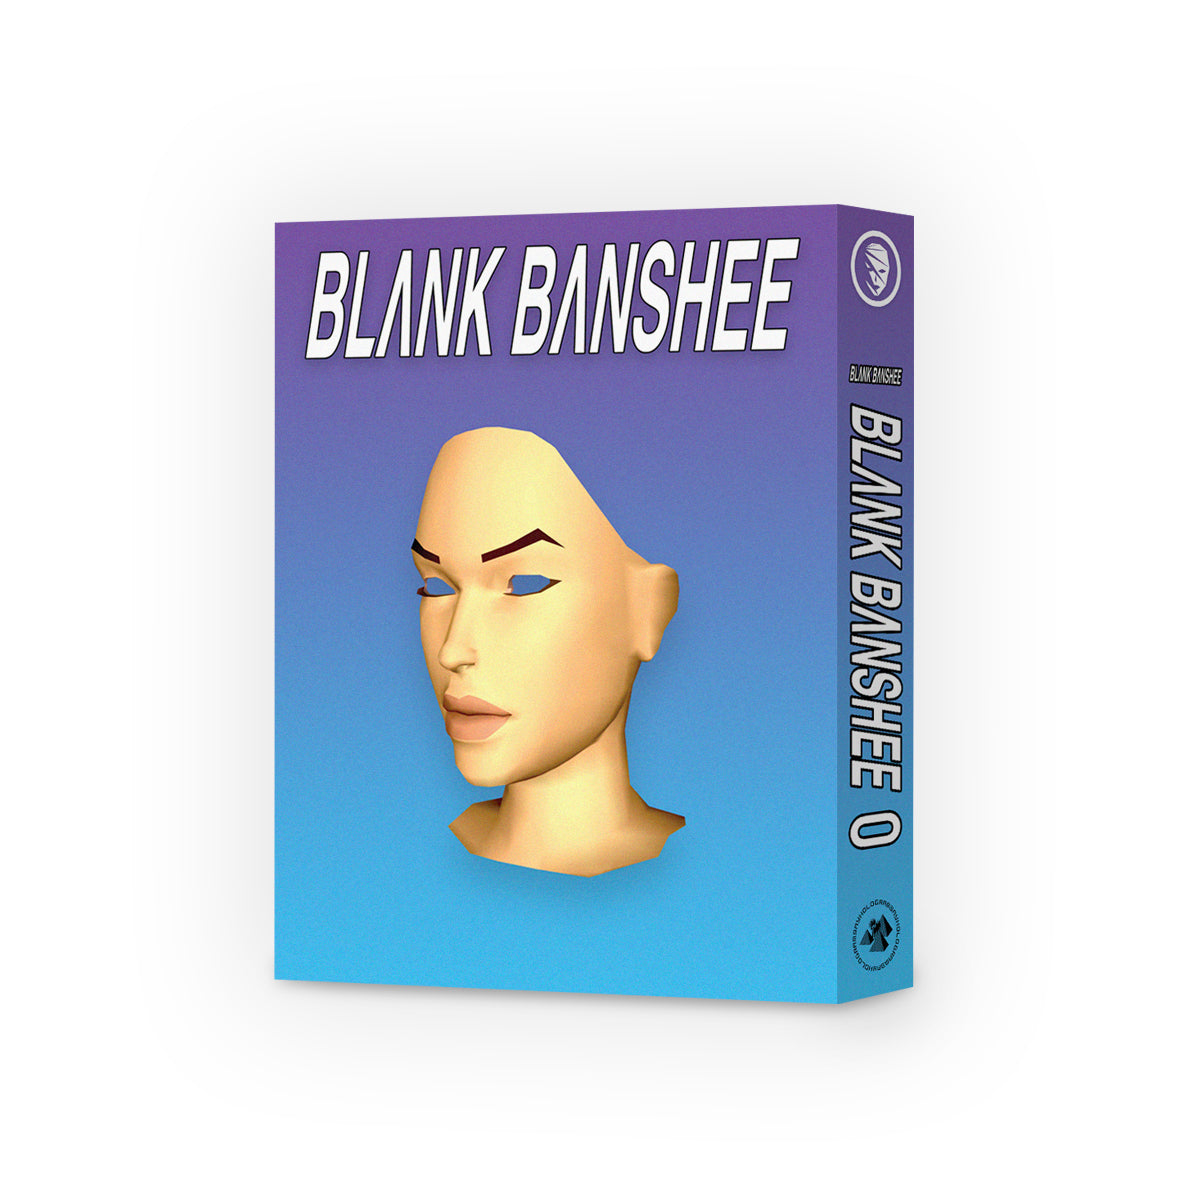 Blank Banshee 0 Big Box